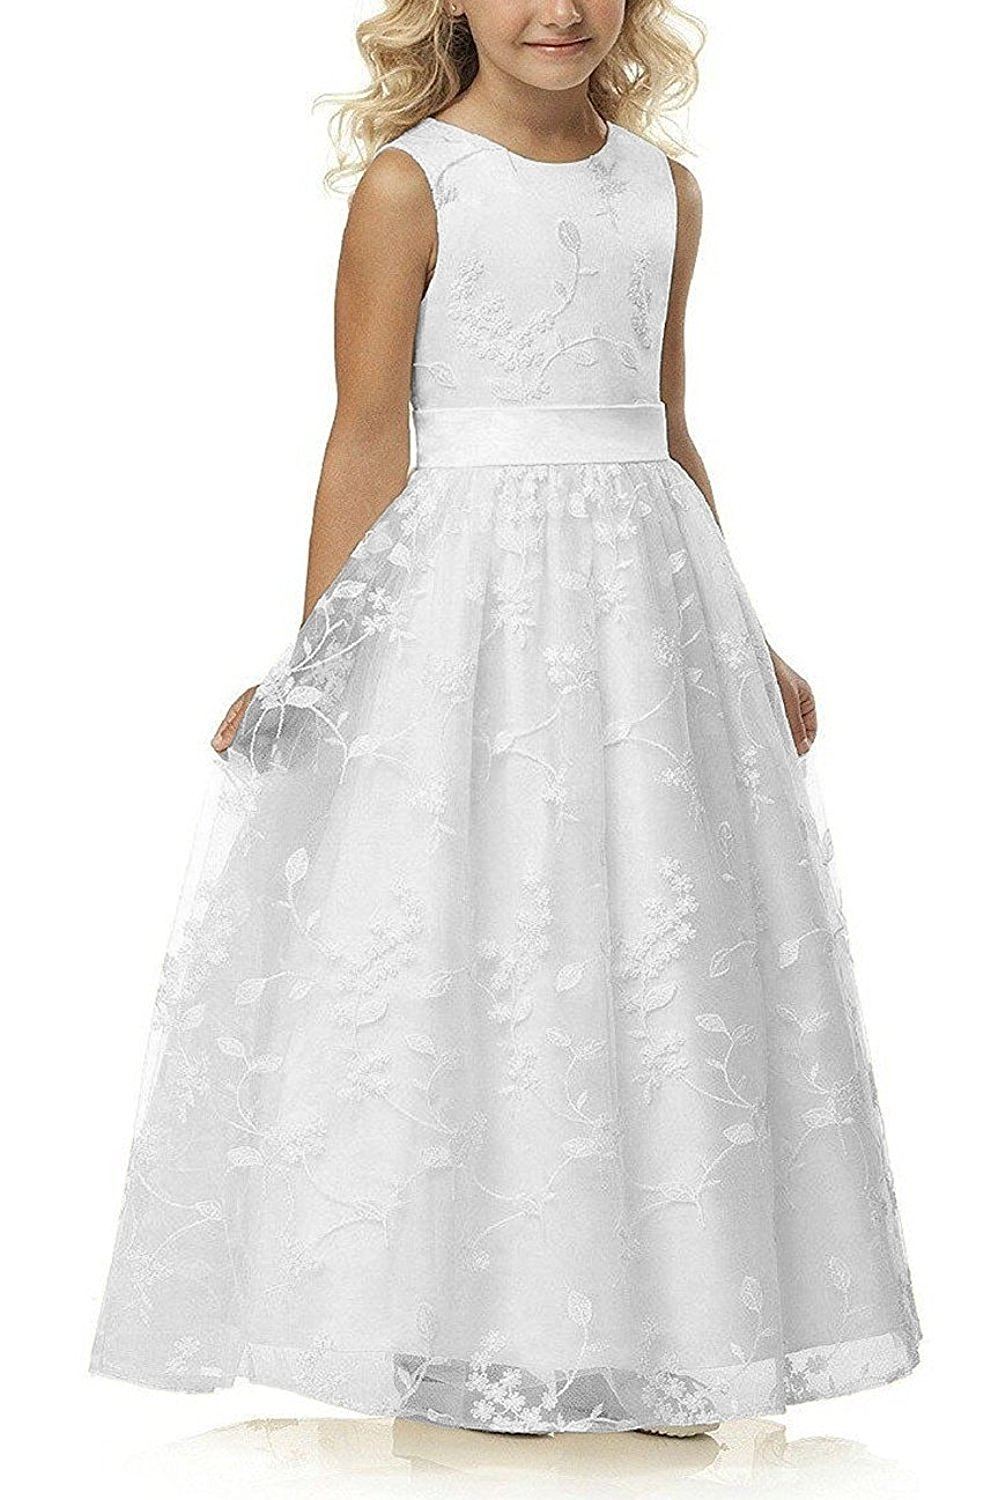 Carat A line Wedding Pageant Lace Flower Girl Dress with Belt 2-12 Year Old (Size 2, White)